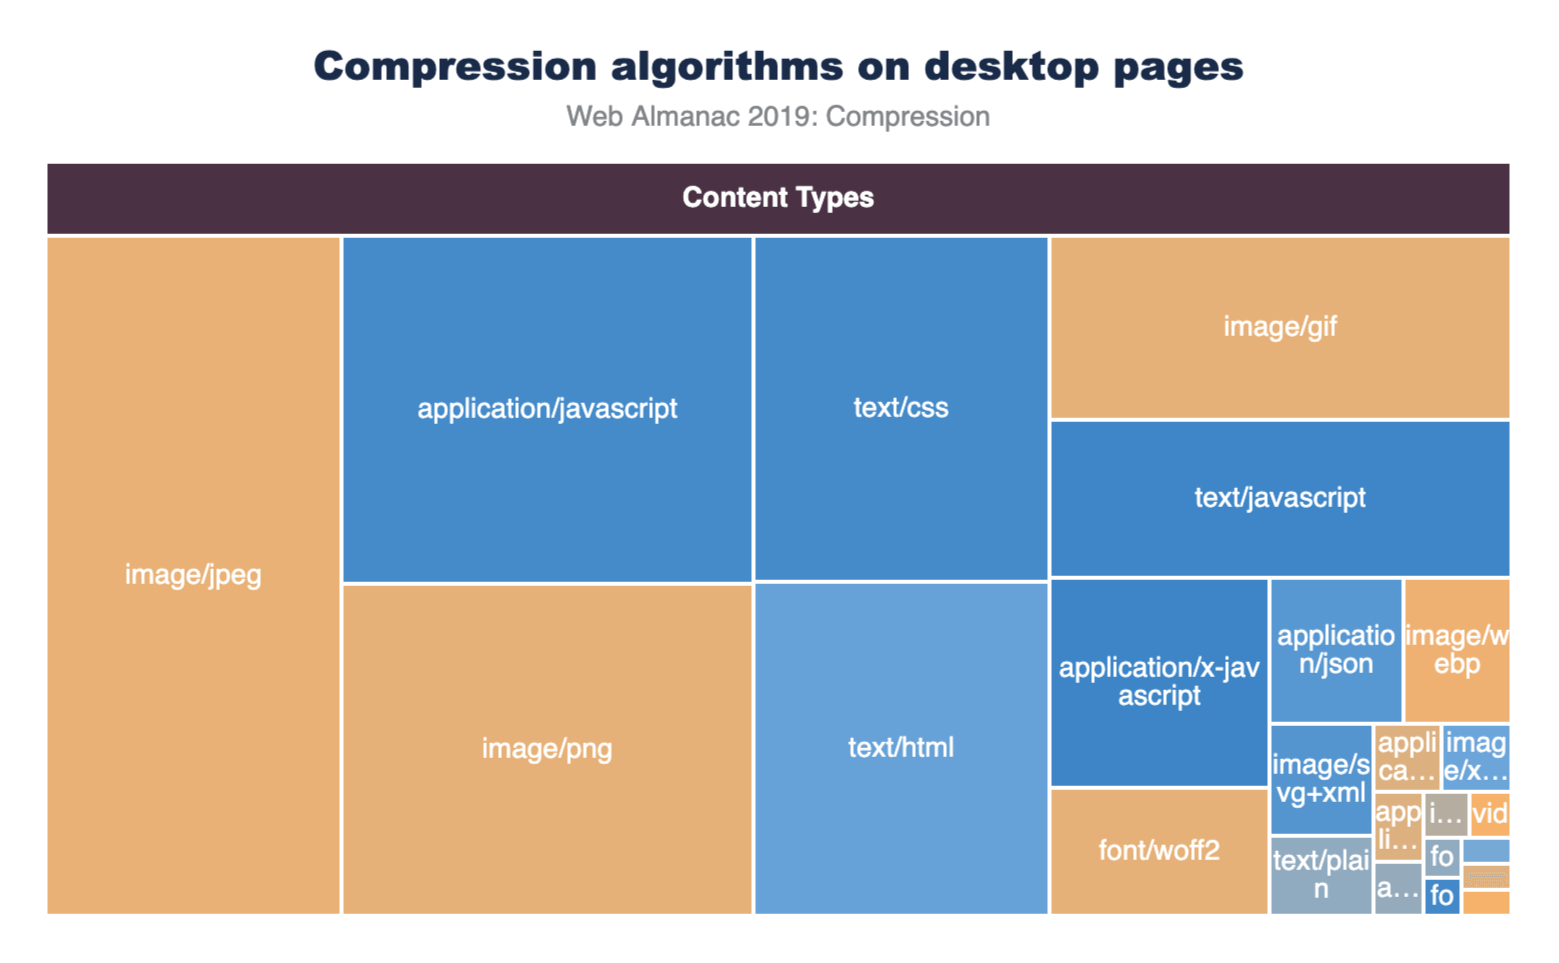 Figure 3. Top 25 compressed content types.